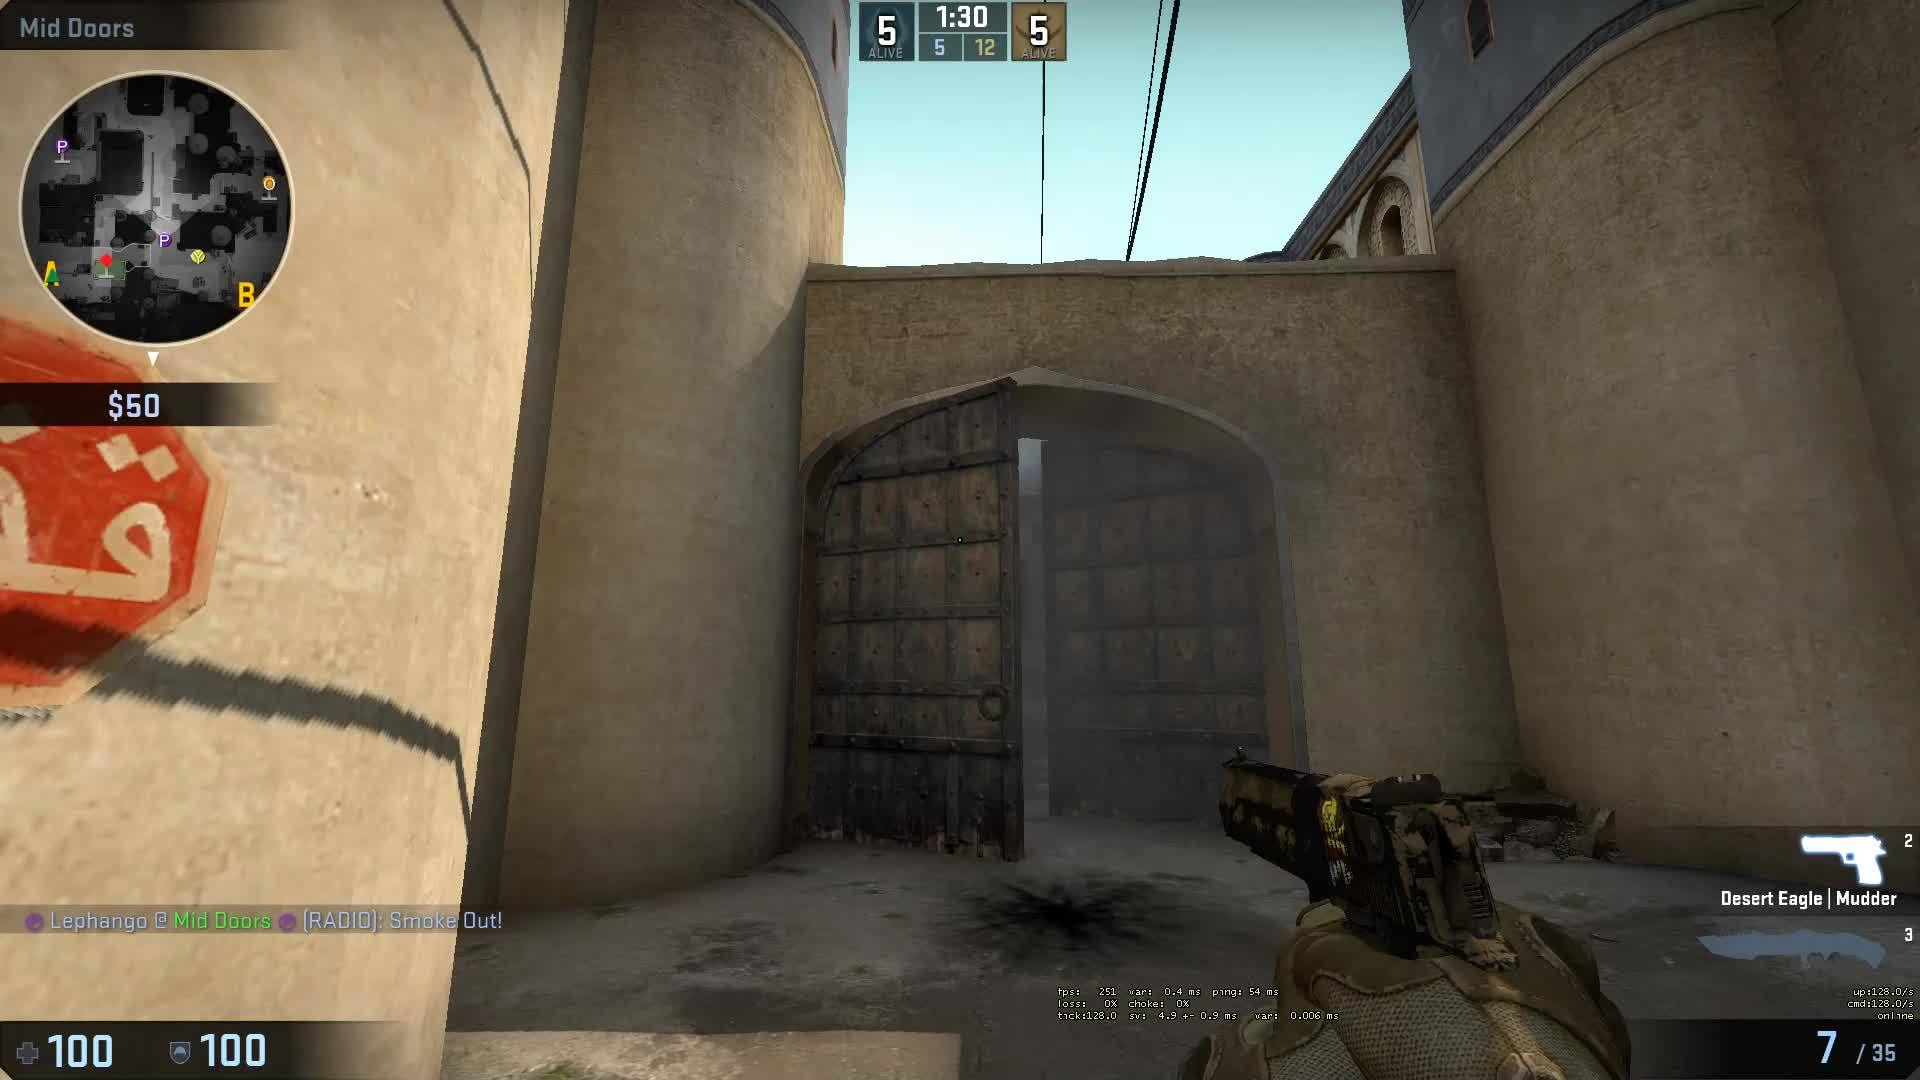 GlobalOffensive, twoxchromosomes, boost? GIFs